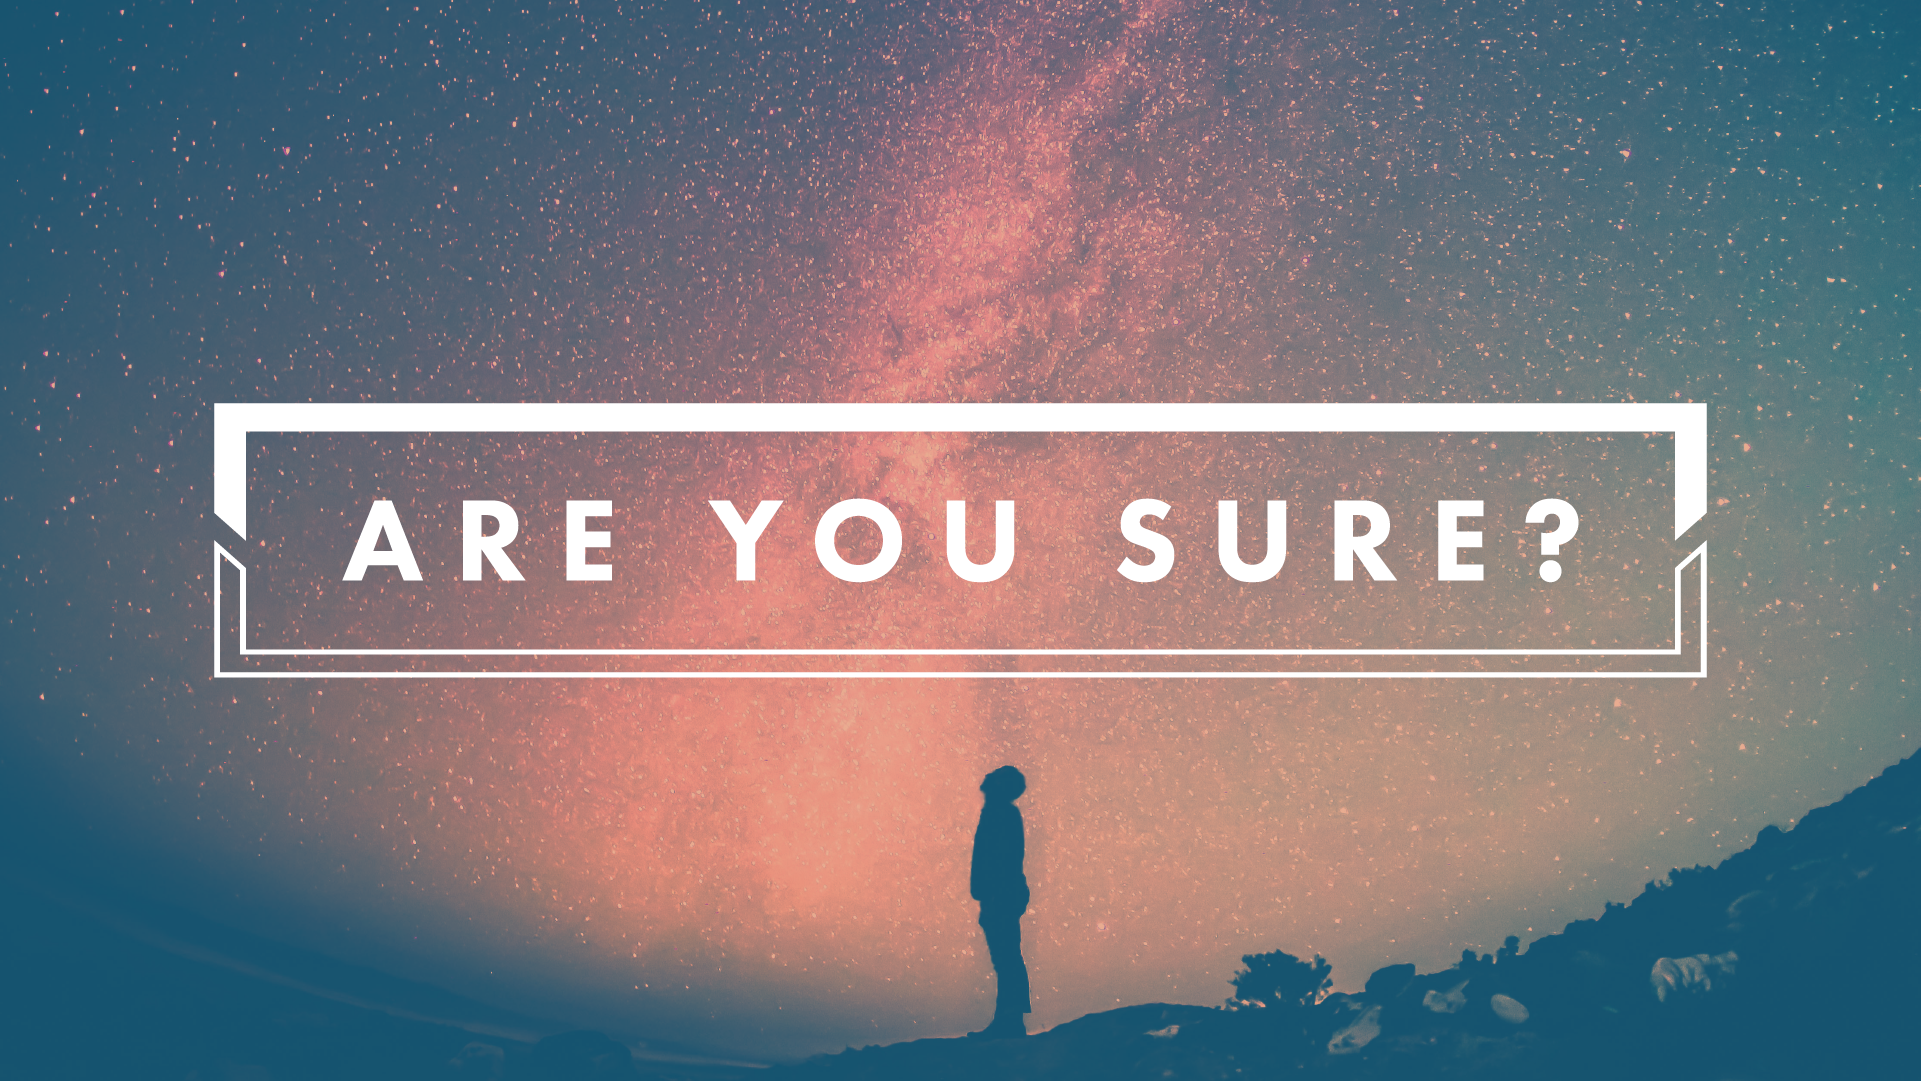 Are You Sure_Digital Graphics_Side Screen_1920x1080.png